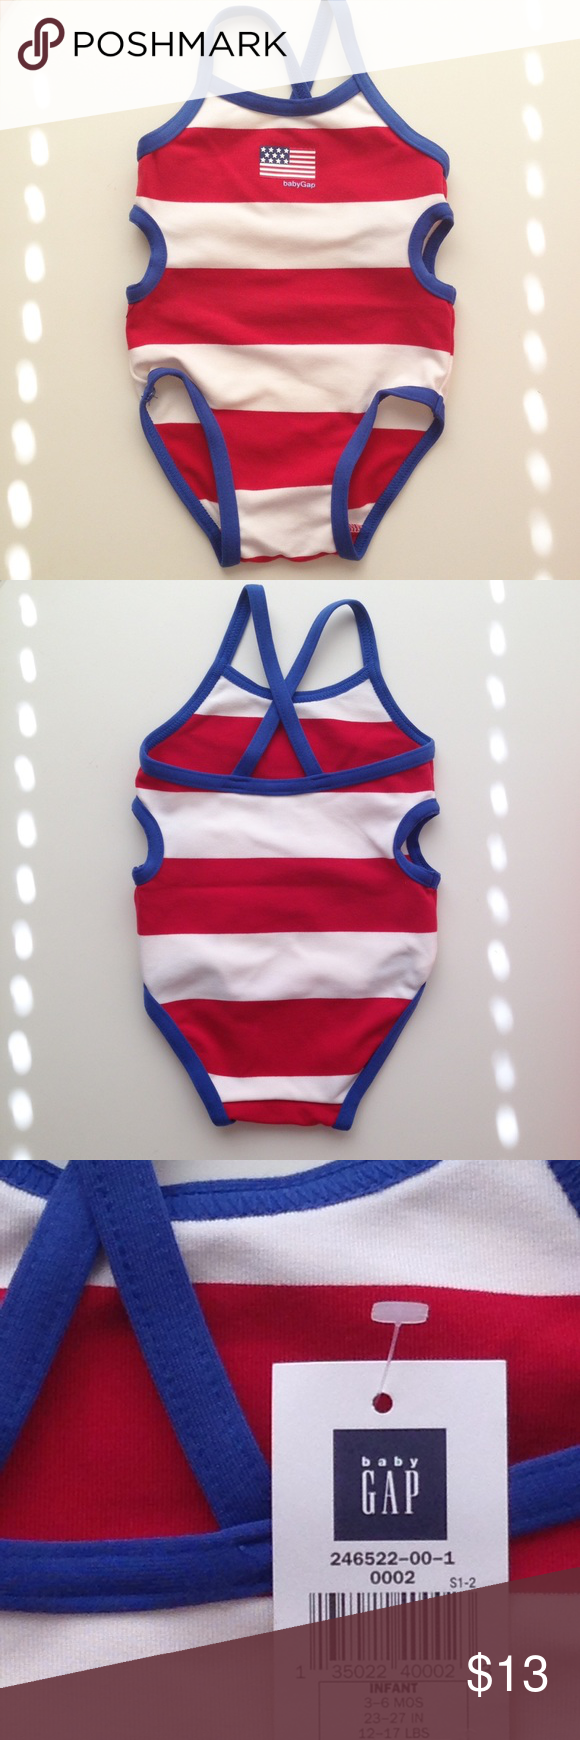 Baby GAP Infant Swimsuit New with tags, Infant swimsuit. Size 3-6 mos. No Trades. Baby Gap Swim One Piece